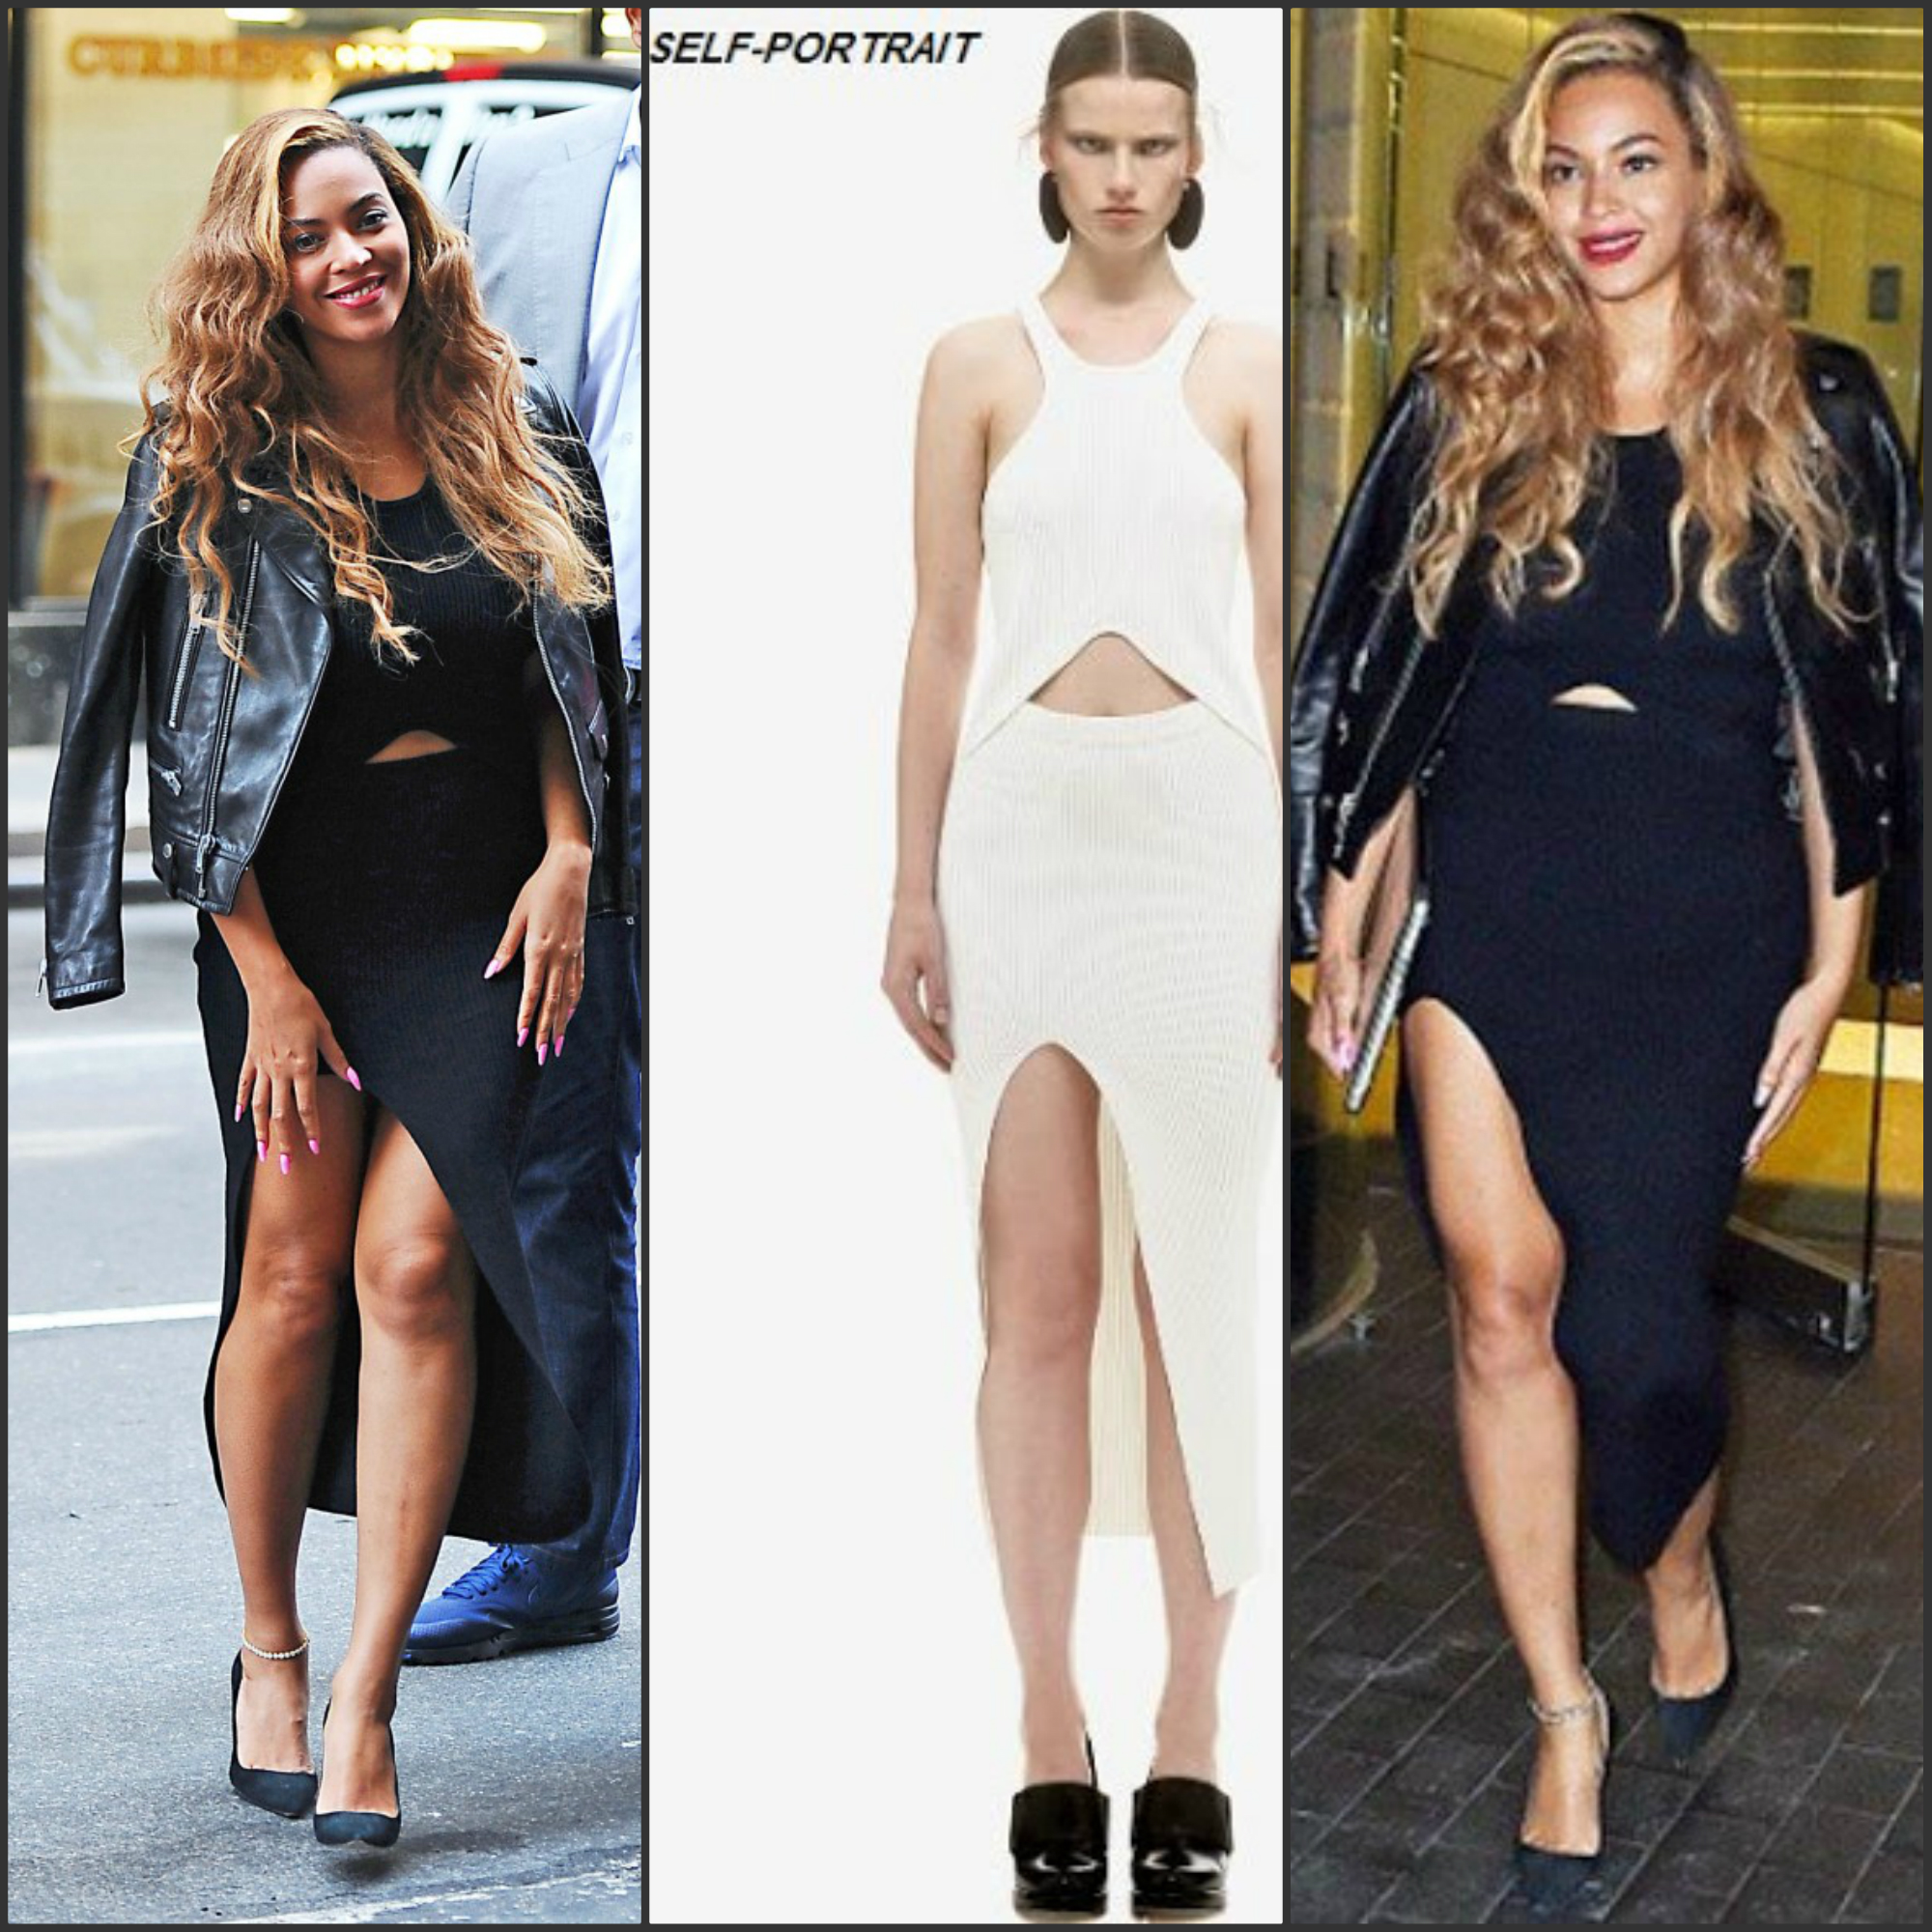 beyonce-in-self-potrait-out-in-new-york